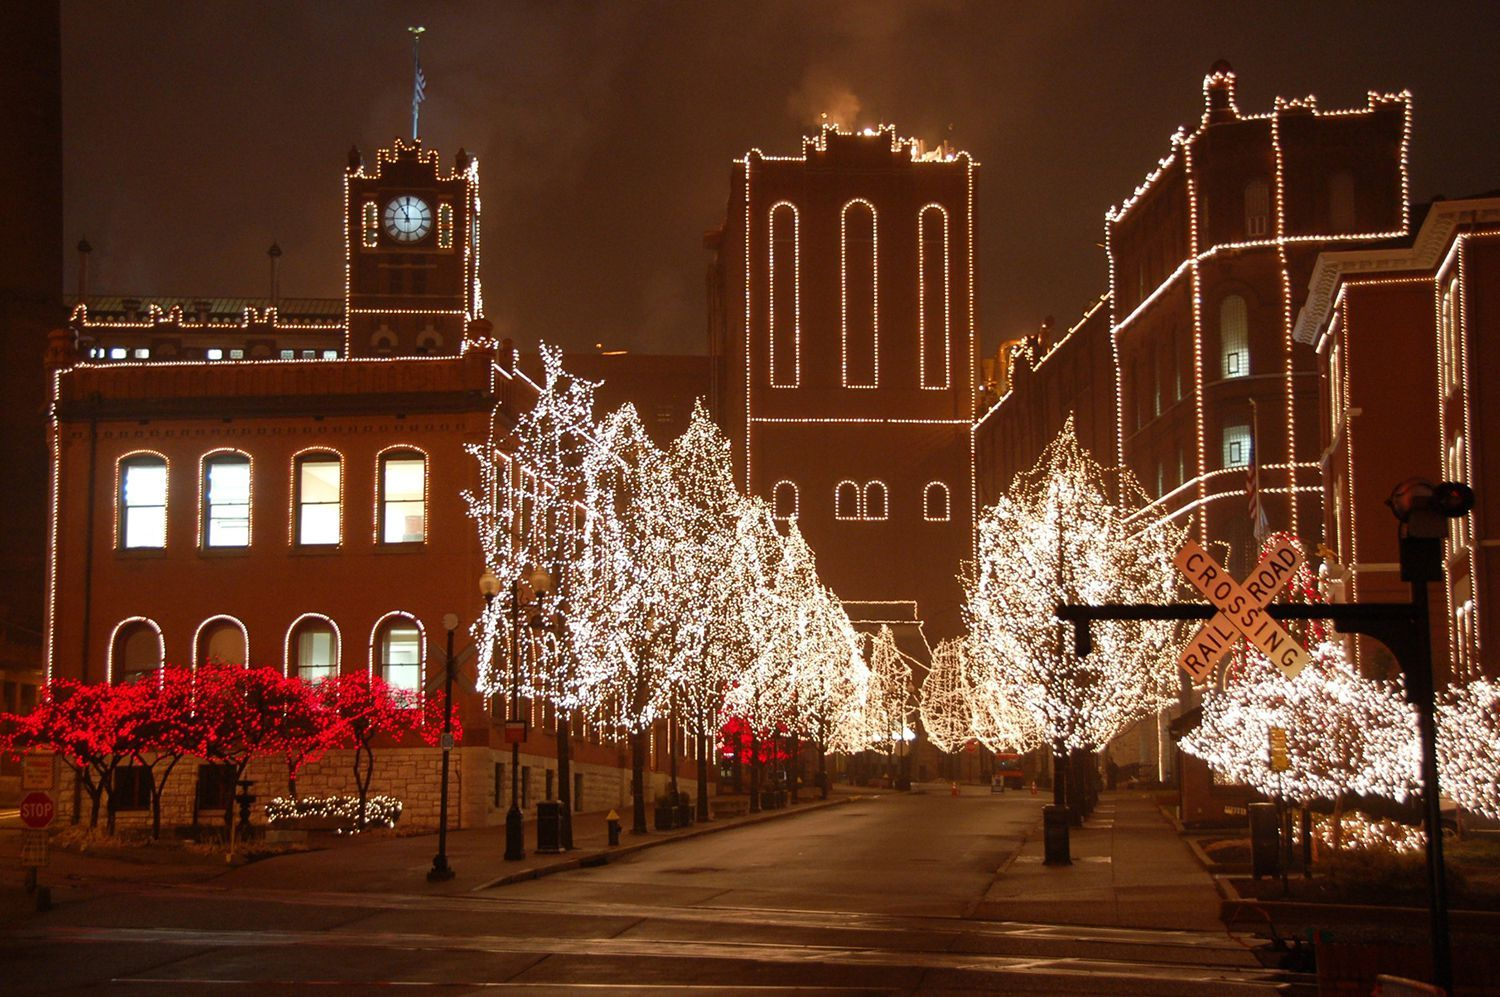 St Louis Christmas Lights 2019 Visit These Neighborhoods to See St. Louis' Best Christmas Lights